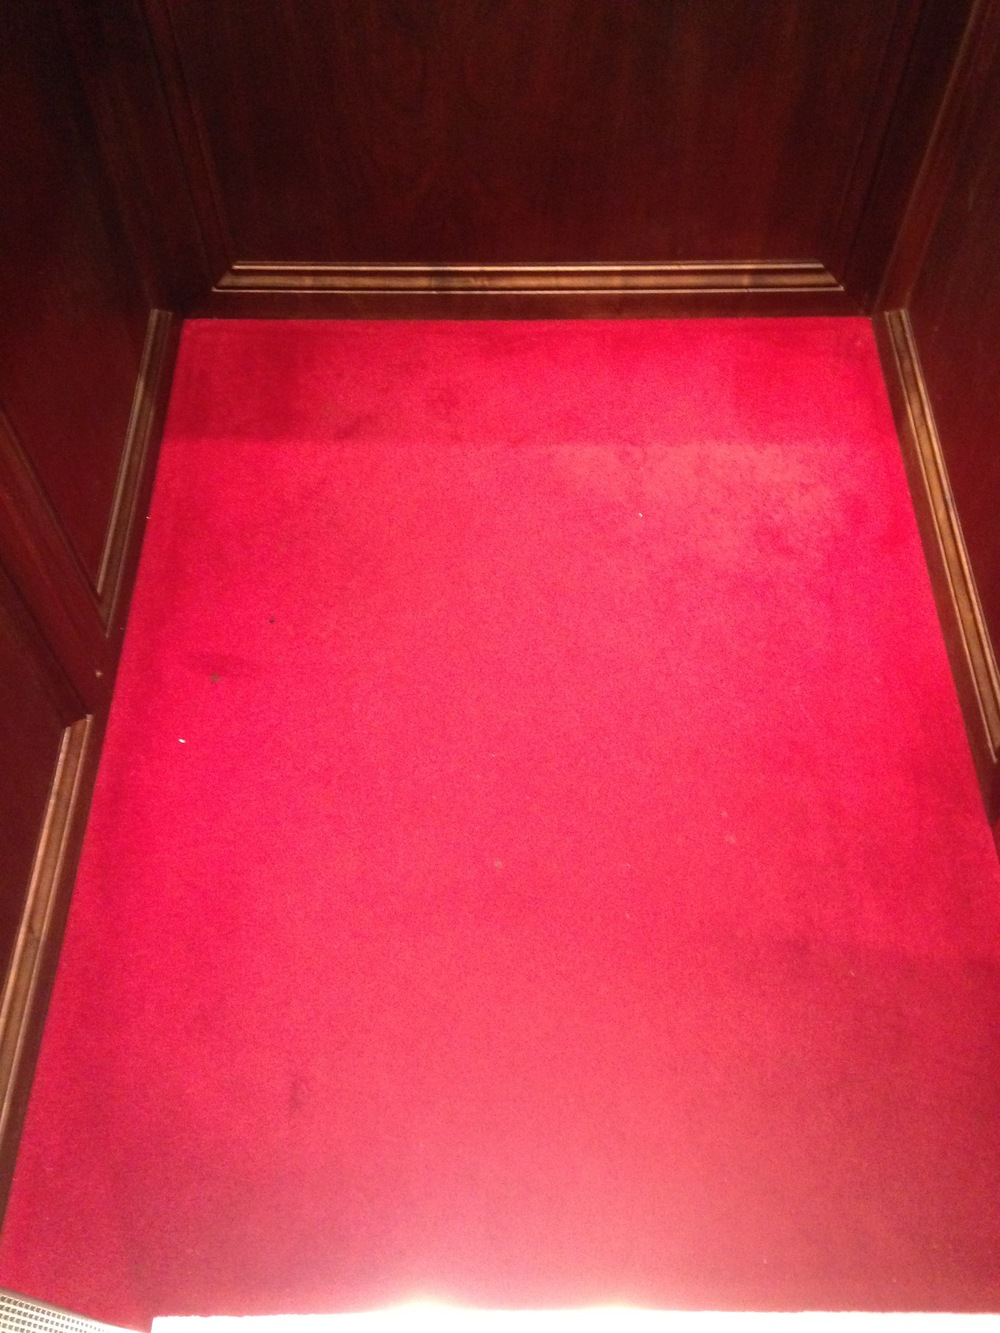 dirty carpet in the lift.jpg